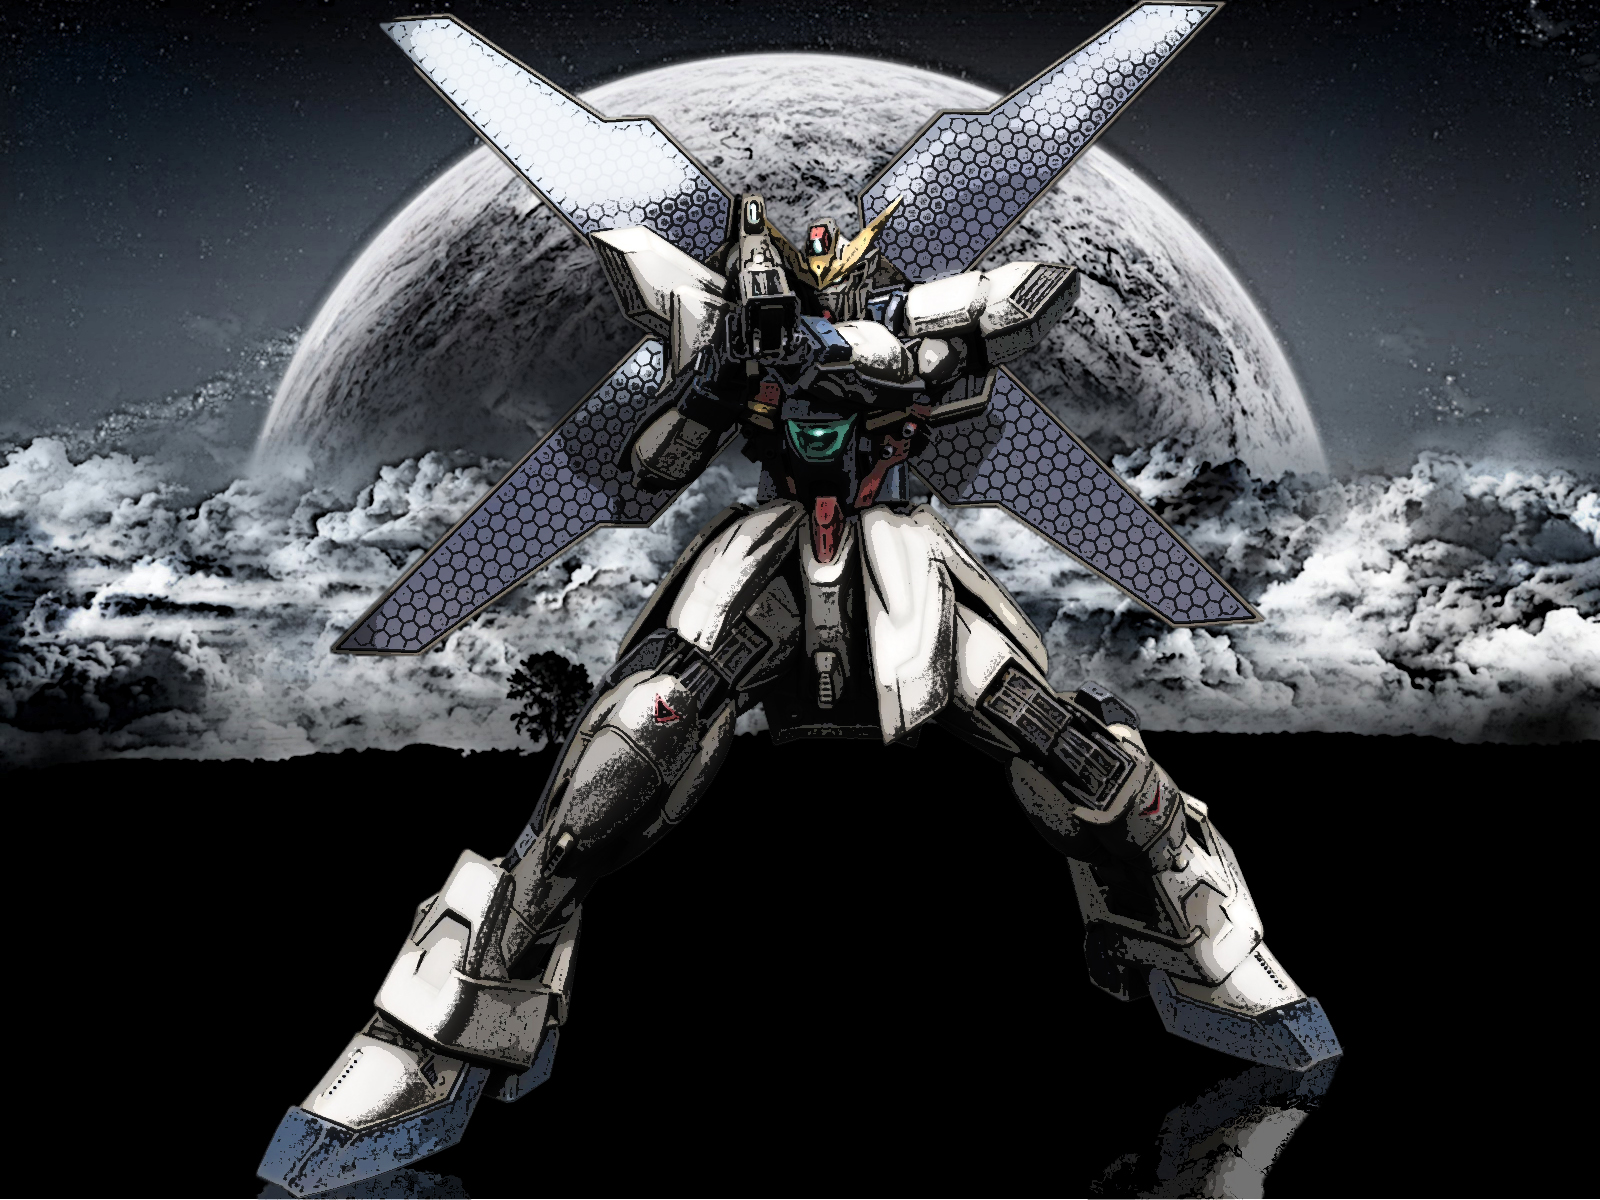 Gundam Wallpaper For Iphone 10221 Wallpaper Game Wallpapers HD 1600x1200